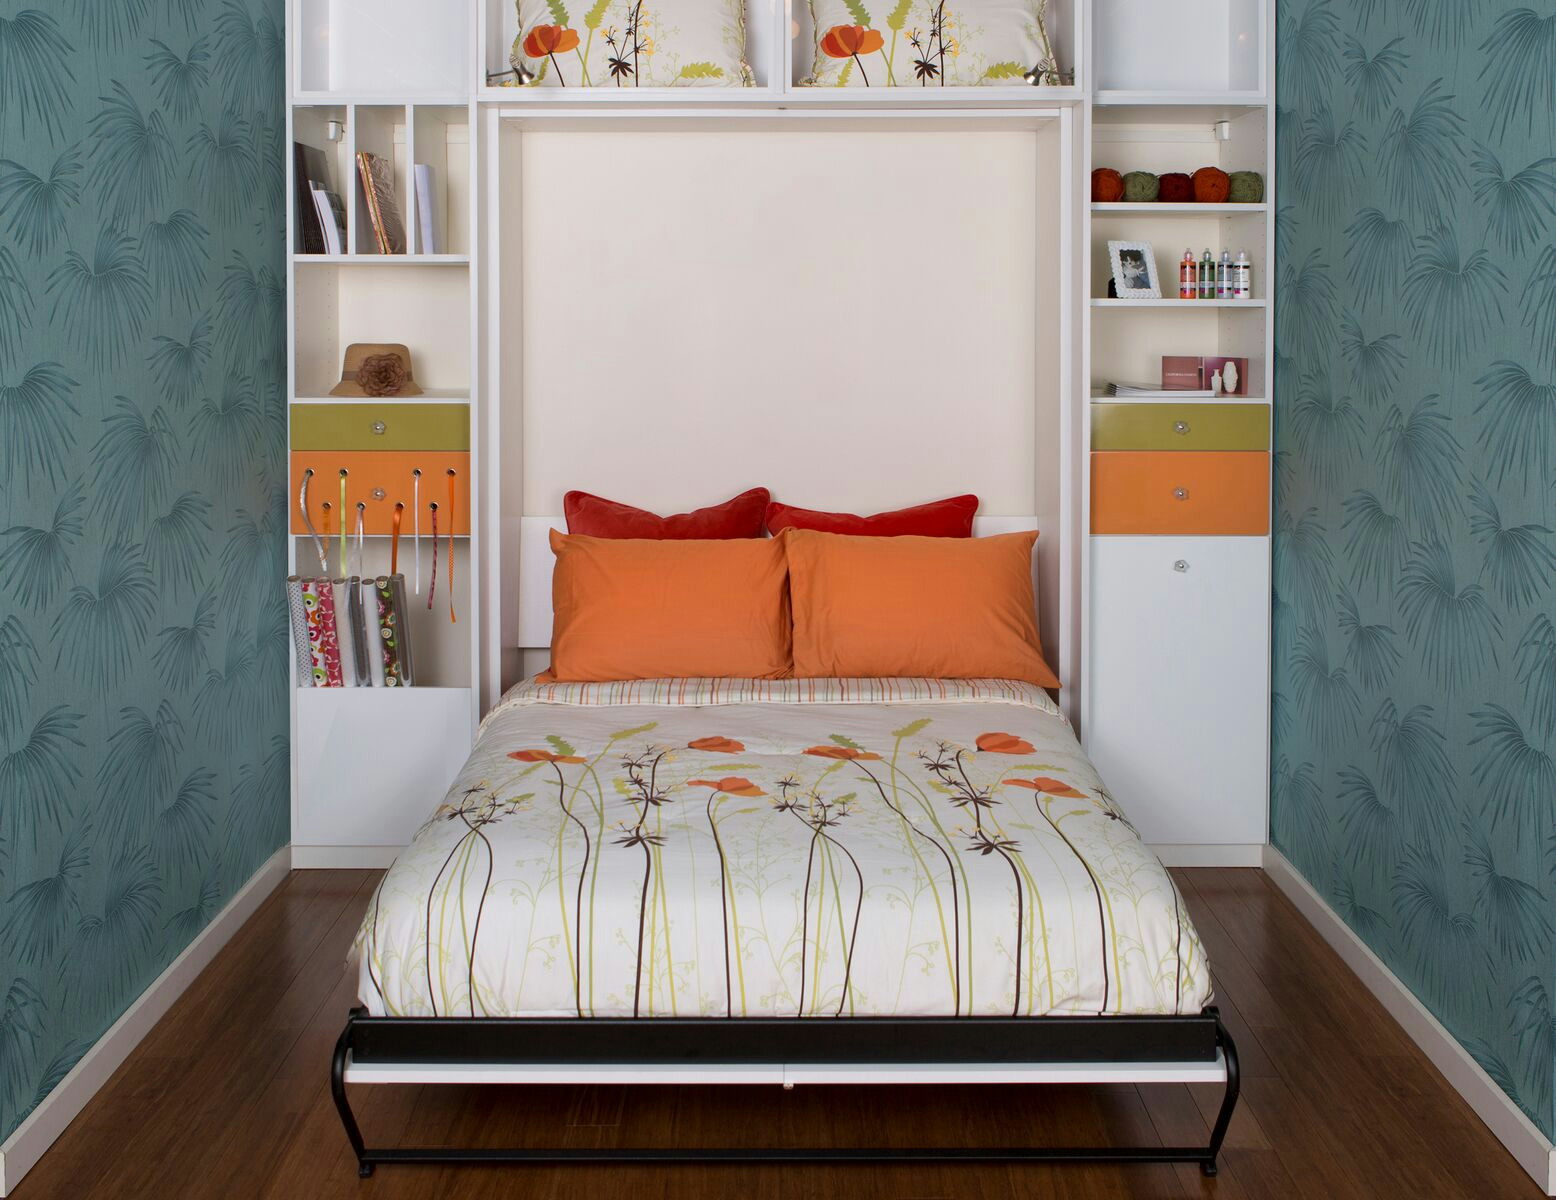 CALIFORNIA CLOSETS TWIN CITIES – GAINING SPACE IN YOUR HOME IS A MUST